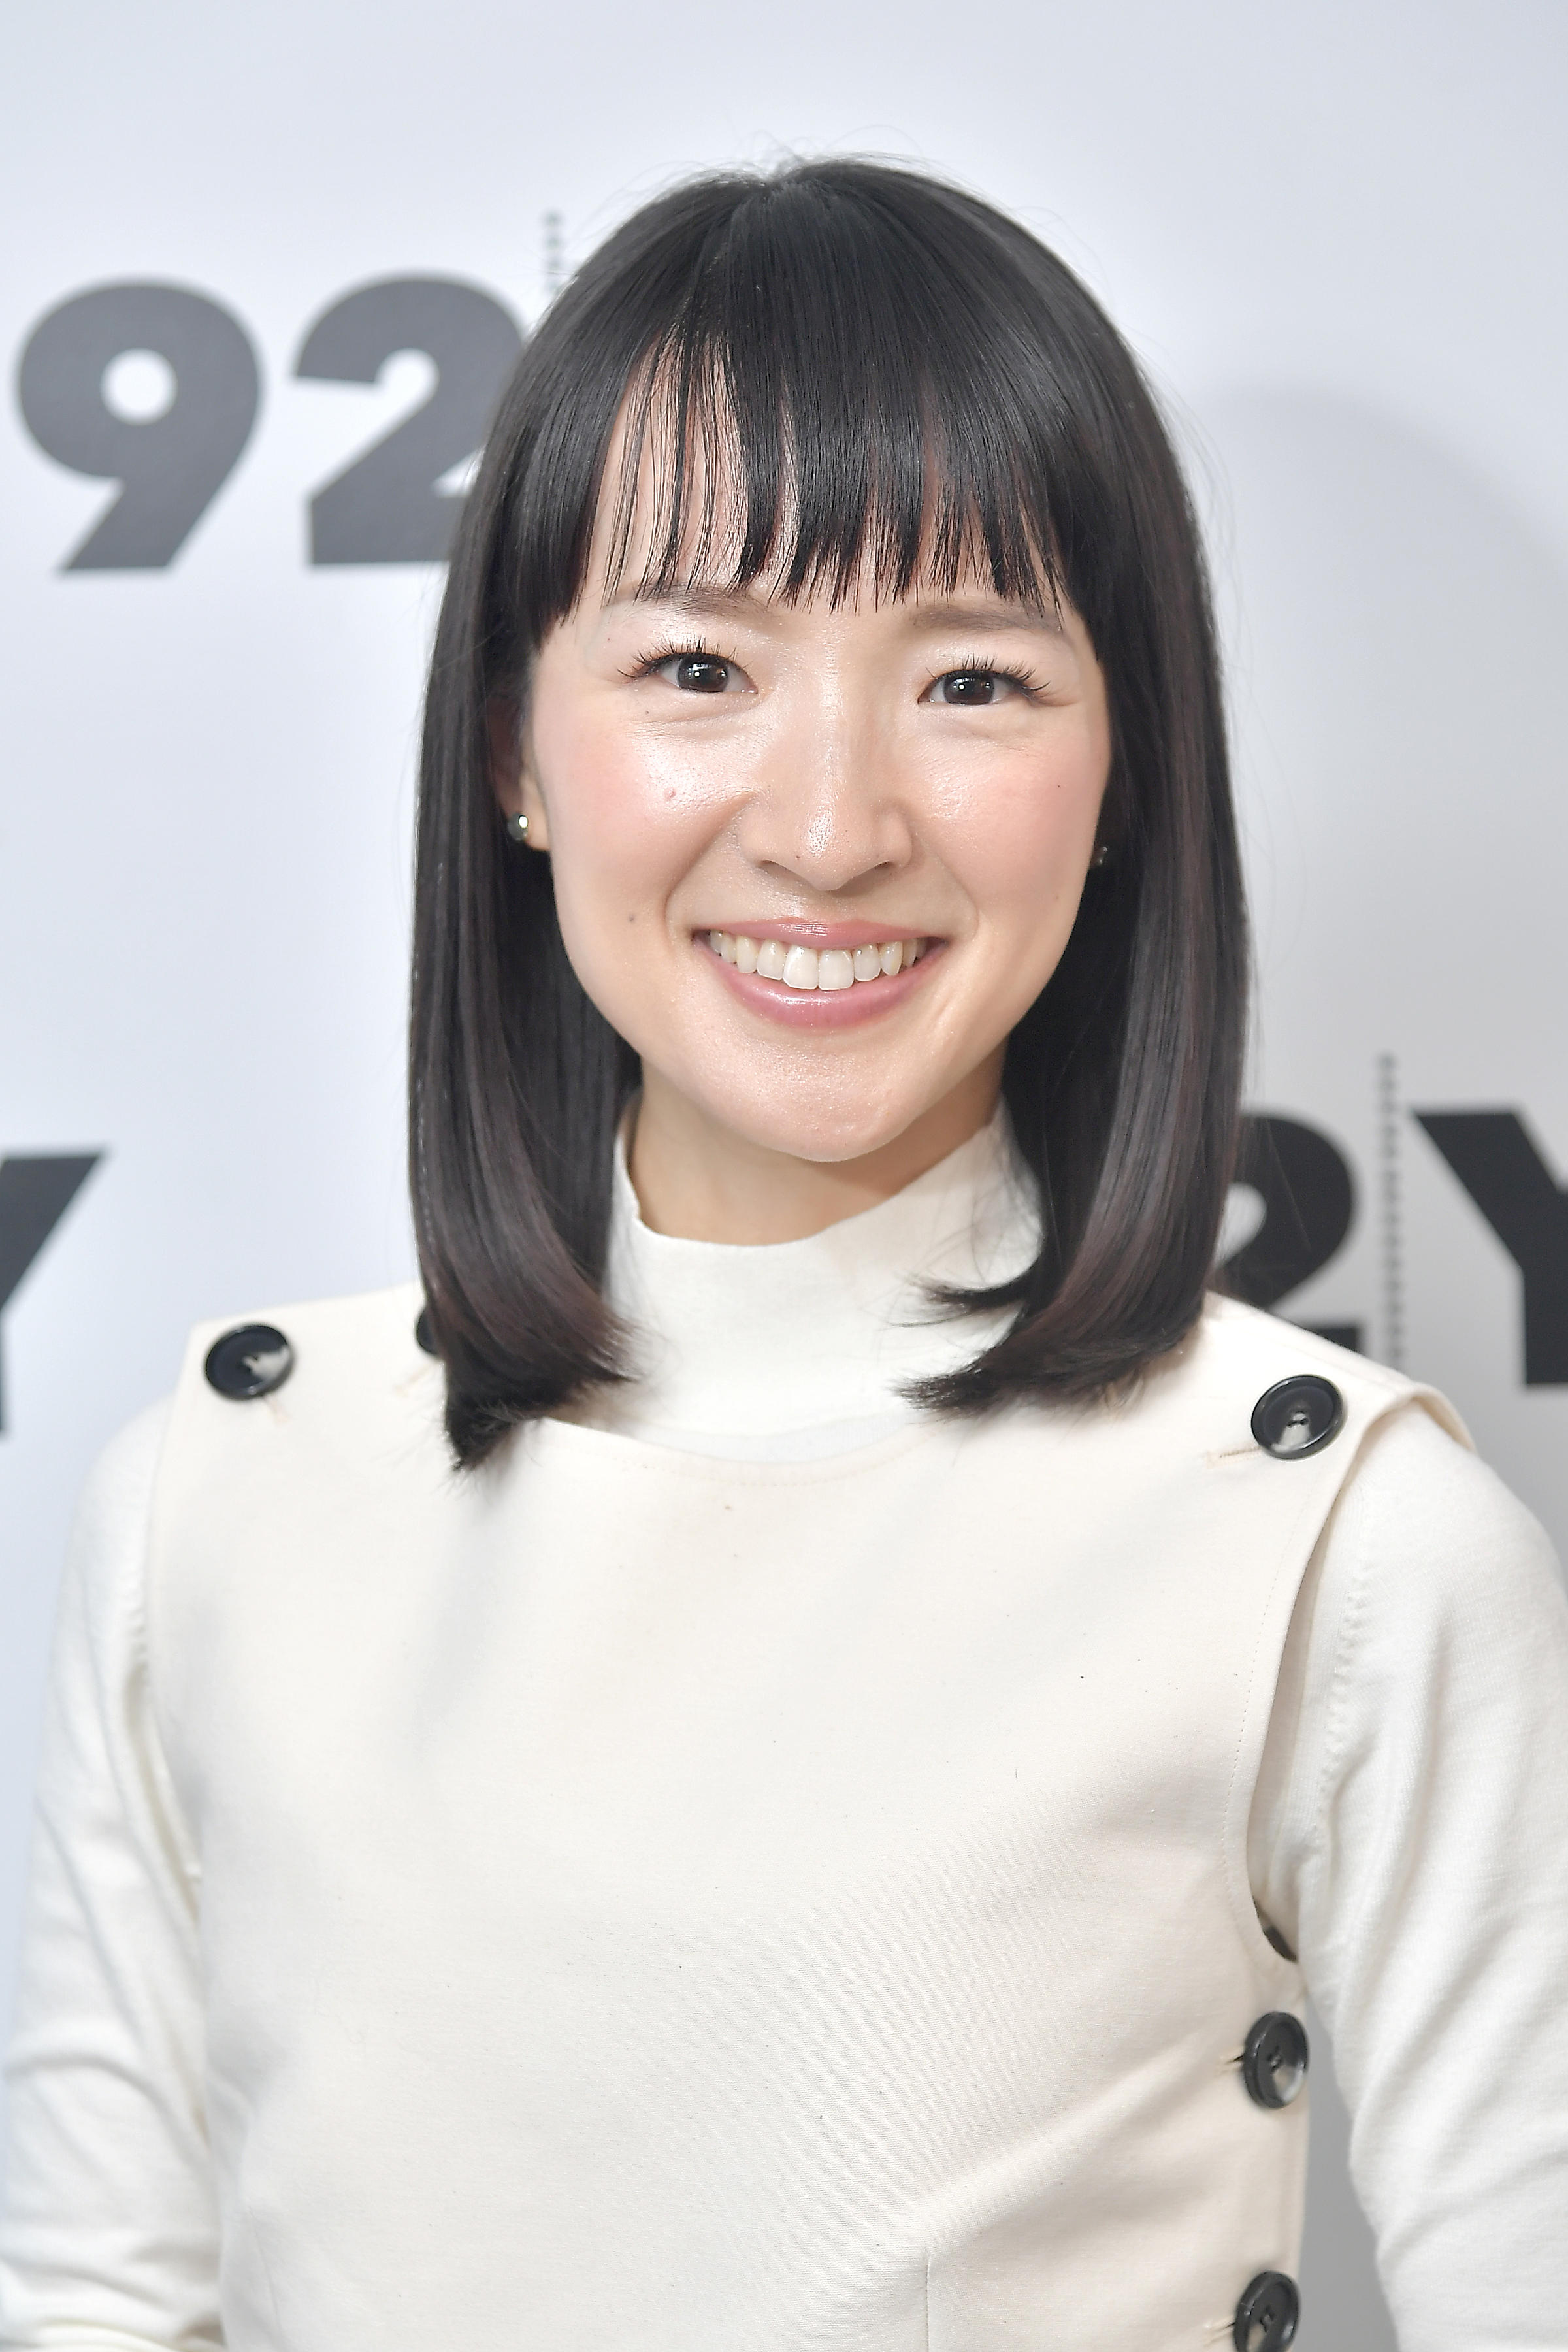 news marie kondo auf netflix darum ist ihre aufr um methode beliebt. Black Bedroom Furniture Sets. Home Design Ideas